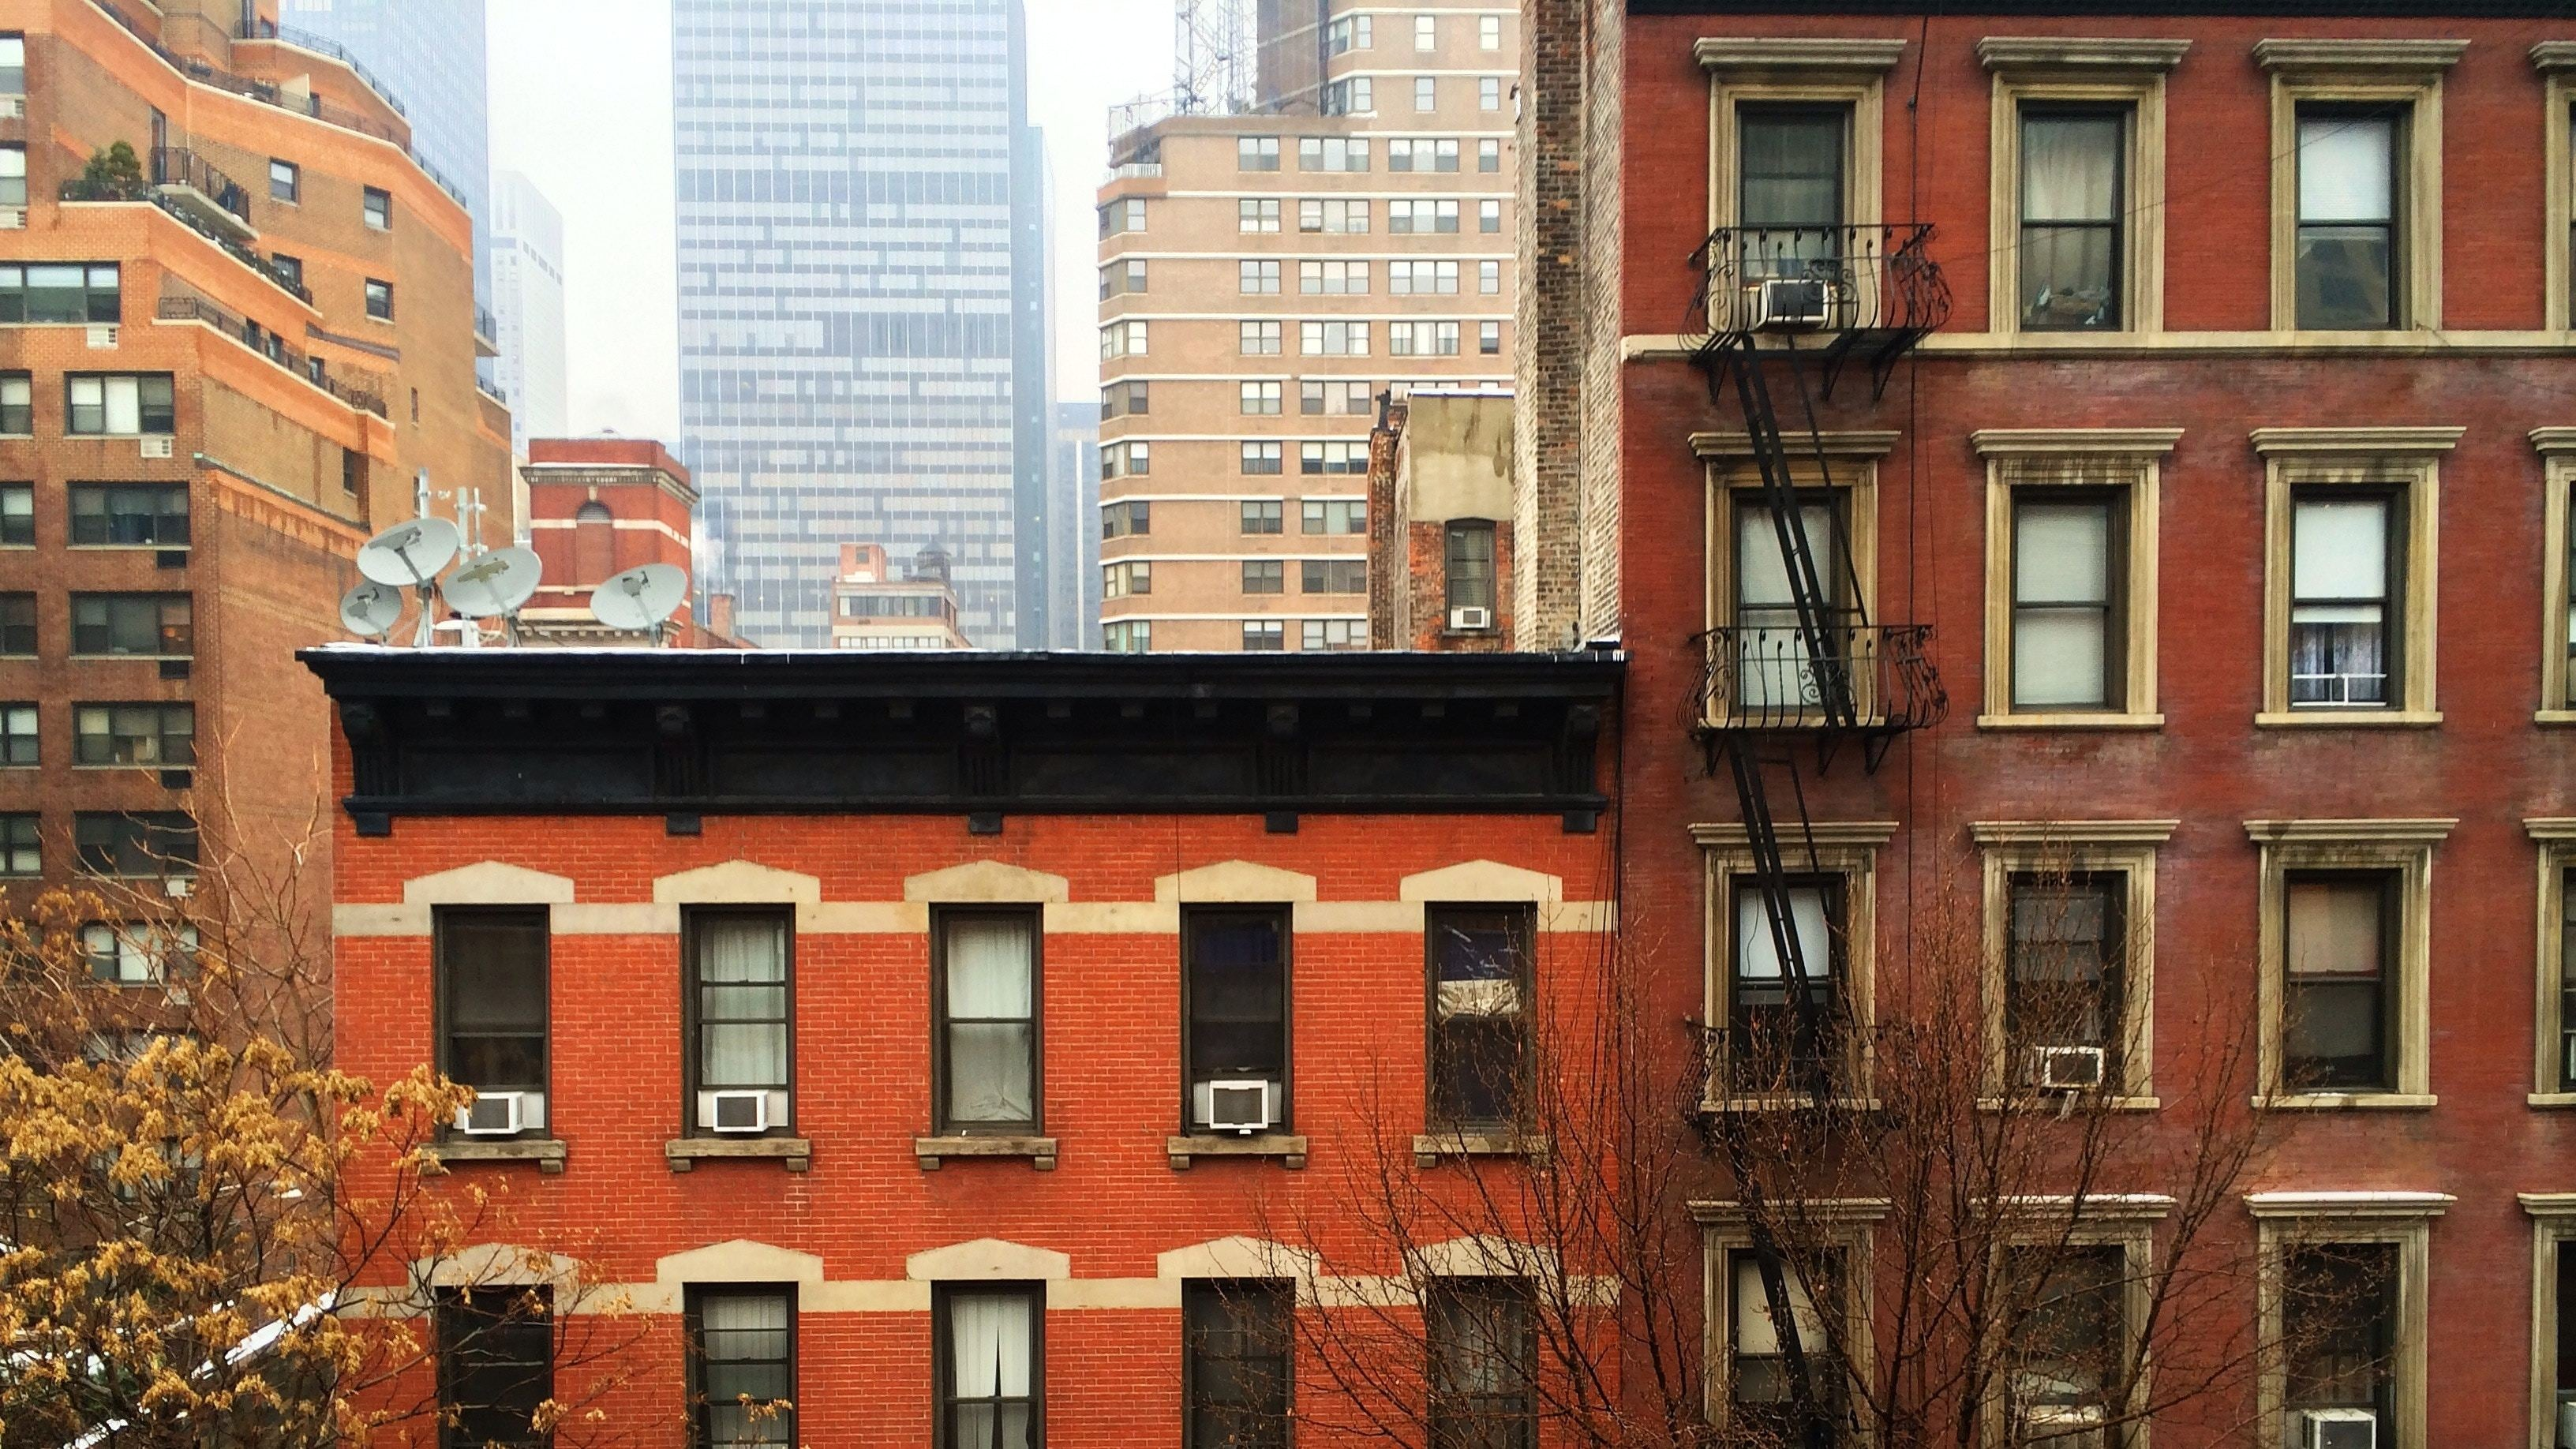 Photo by Paul Nylund on Unsplash & The Essential Questions You Should Ask Before Renting an Apartment